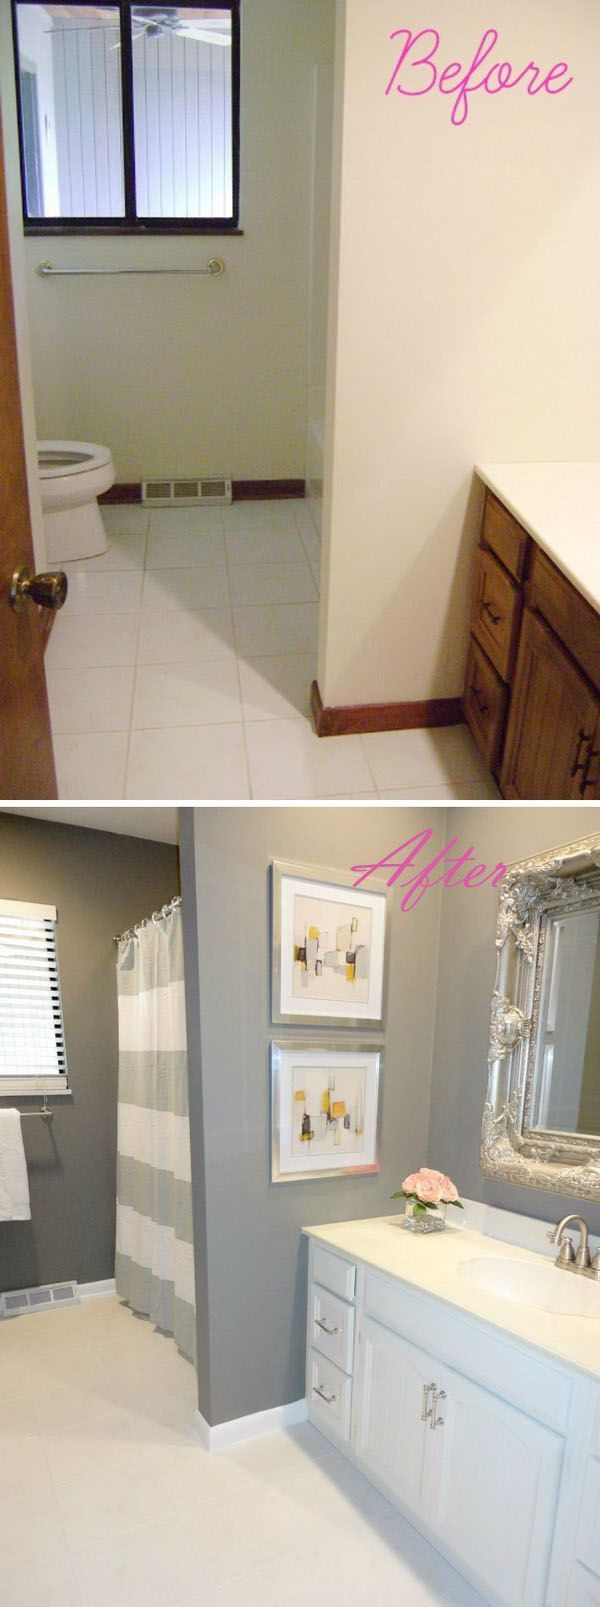 Paint ideas bathroom - Before And After 20 Awesome Bathroom Makeovers